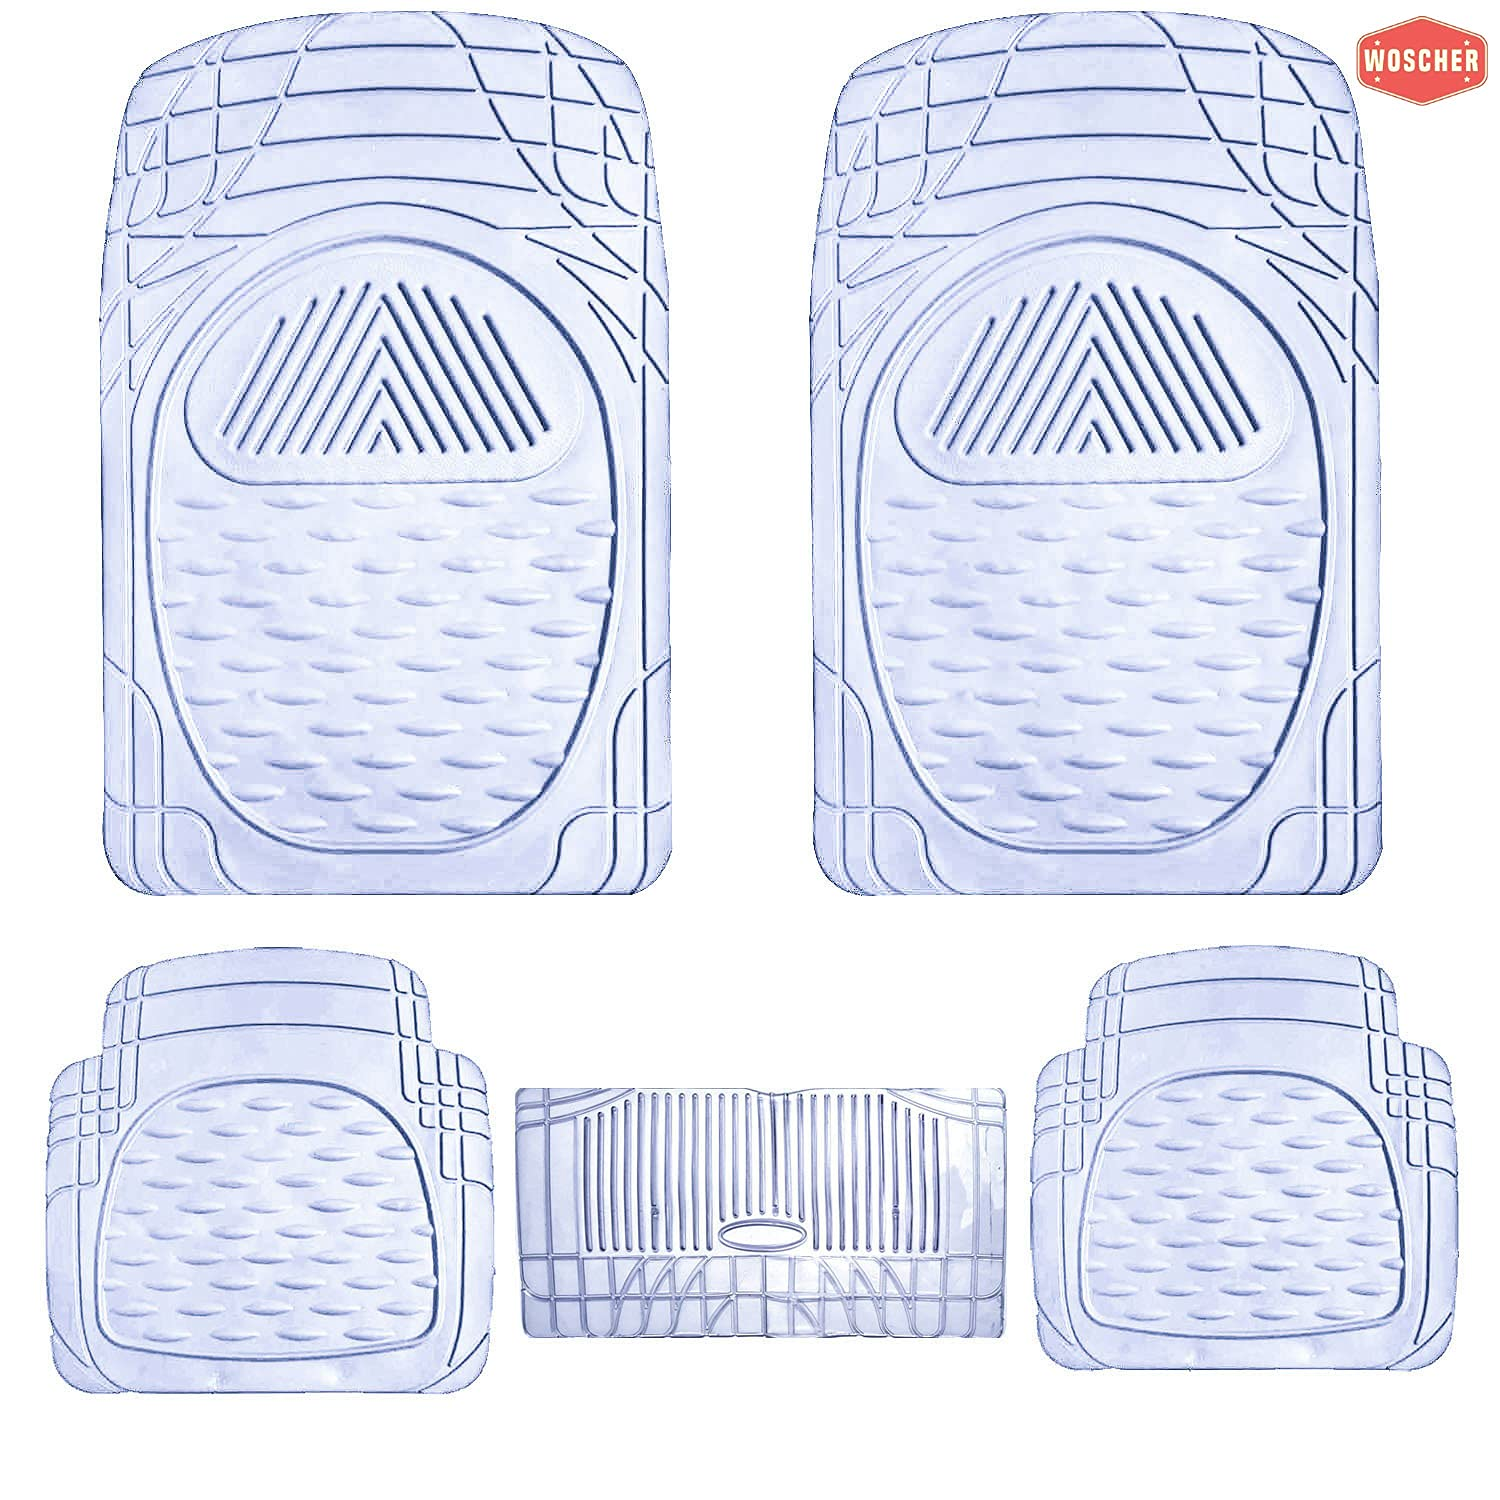 woscher-6204-flextough-all-season-odorless-rubber-floor-car-mat-for-car-suv-universal-self-cut-to-perfectly-fit-clear